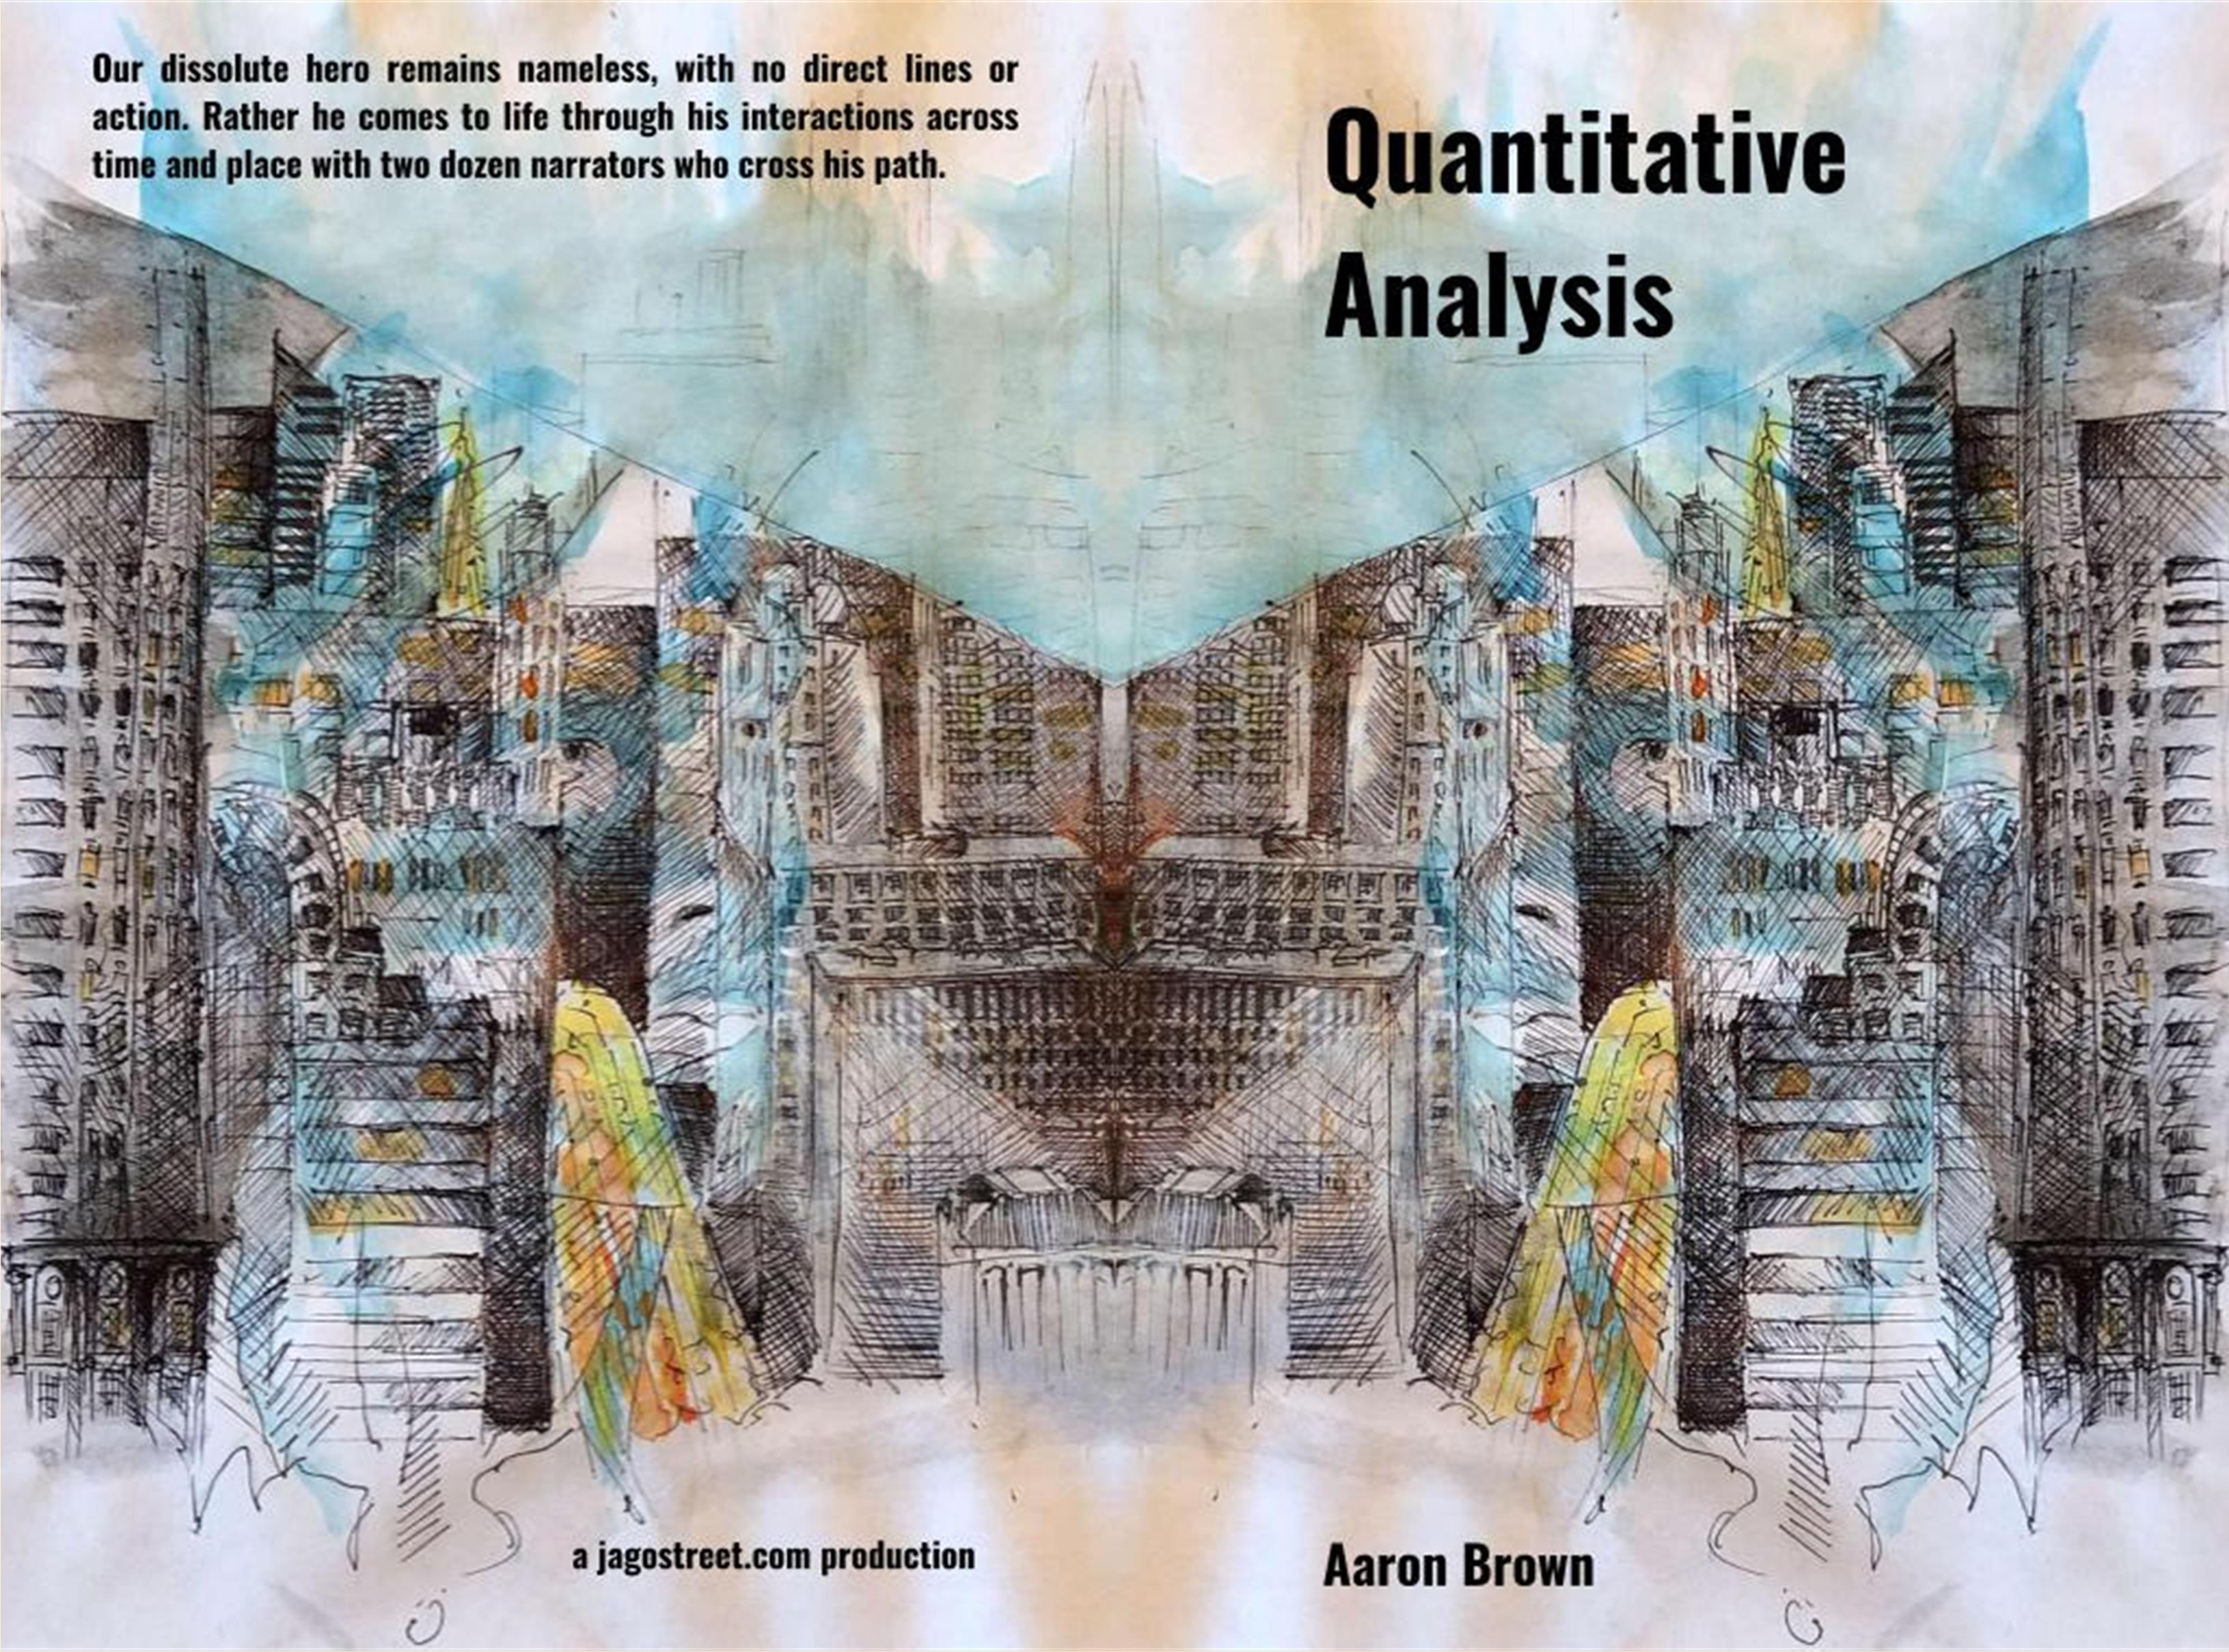 Quantitative Analysis cover image